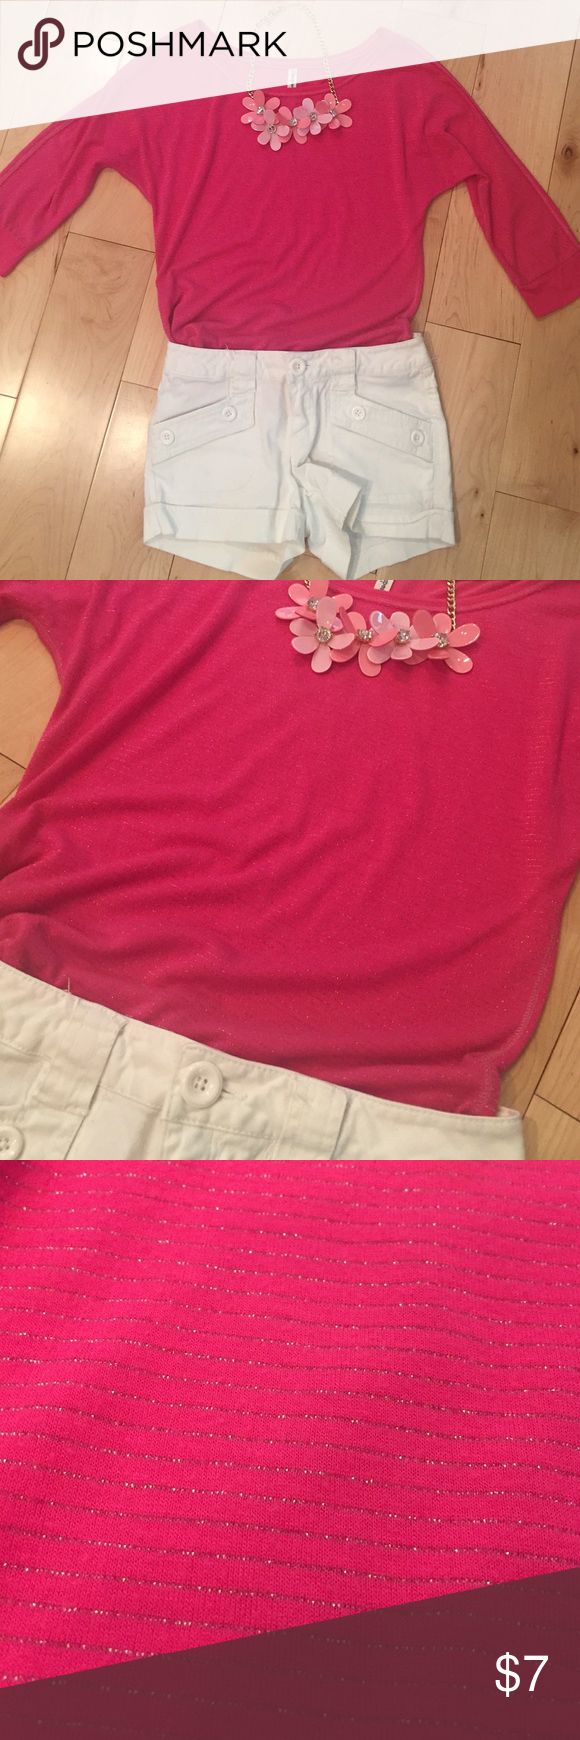 Pink quarter sleeve top Light weight and comfortable. Hot pink with silver stripes! Looks really cute with white shorts! Selling because I've only worn it a few times! For pictures on feel free to ask! Aeropostale Tops